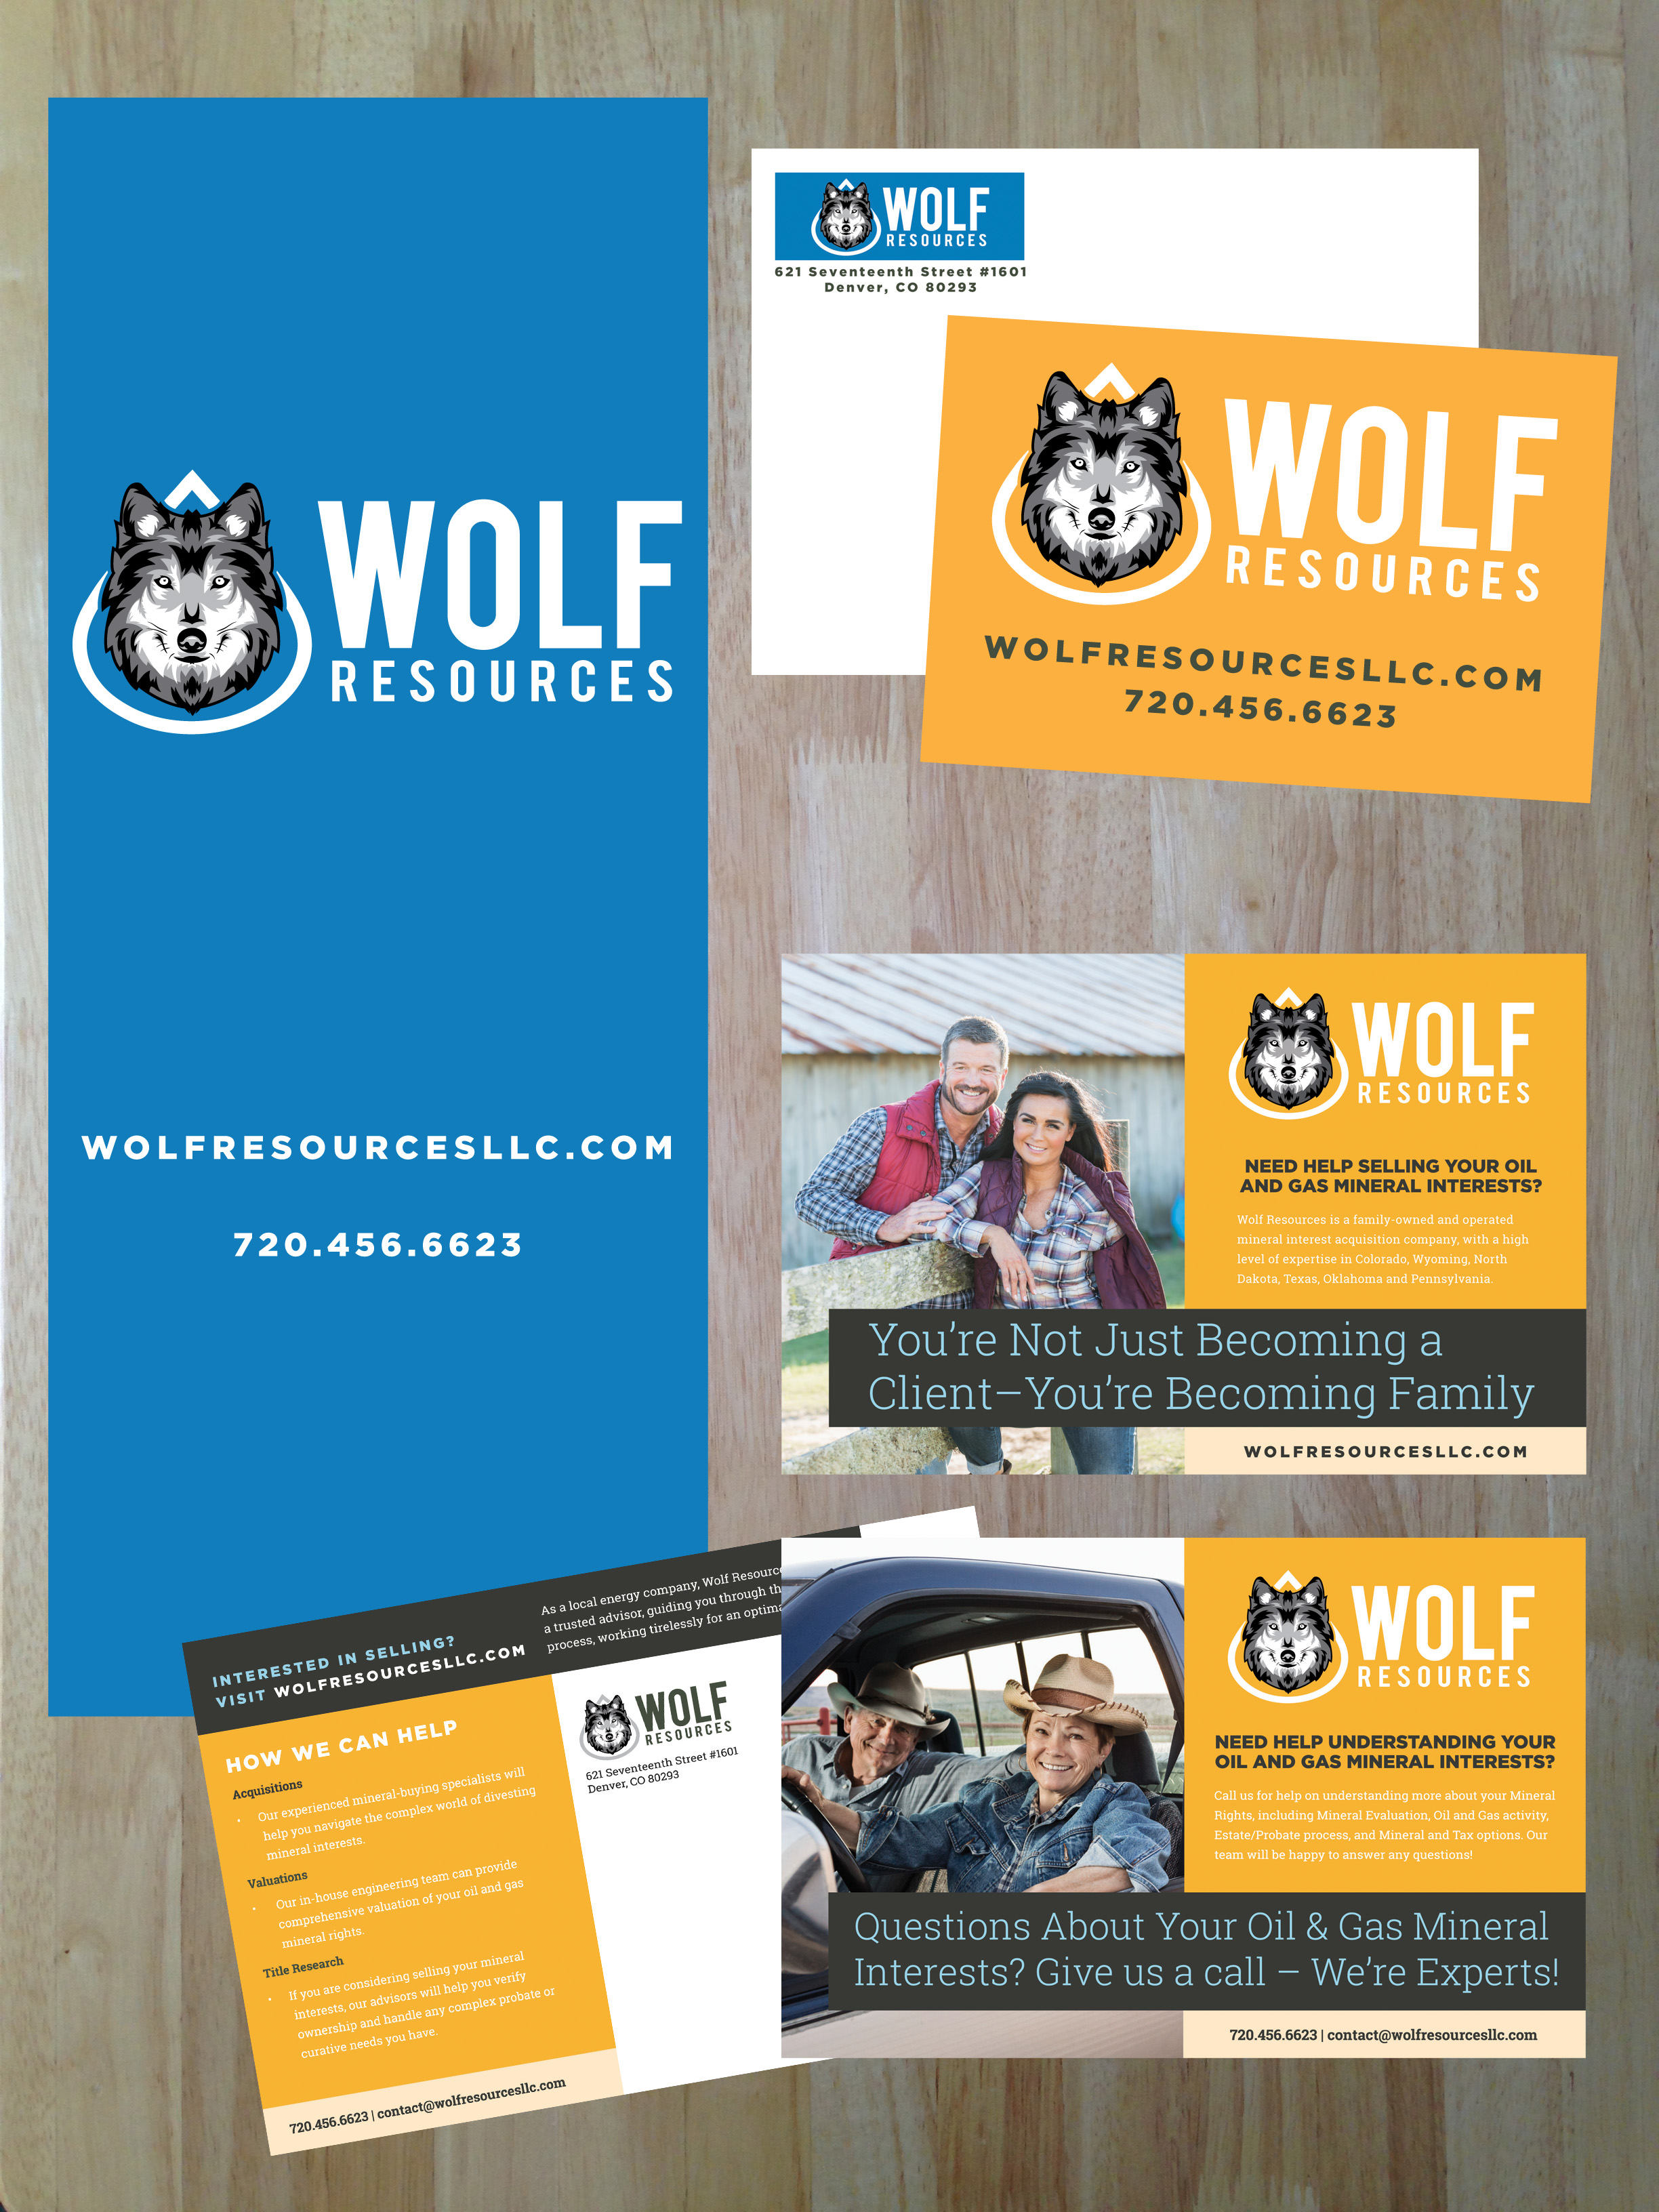 Wolf Resources